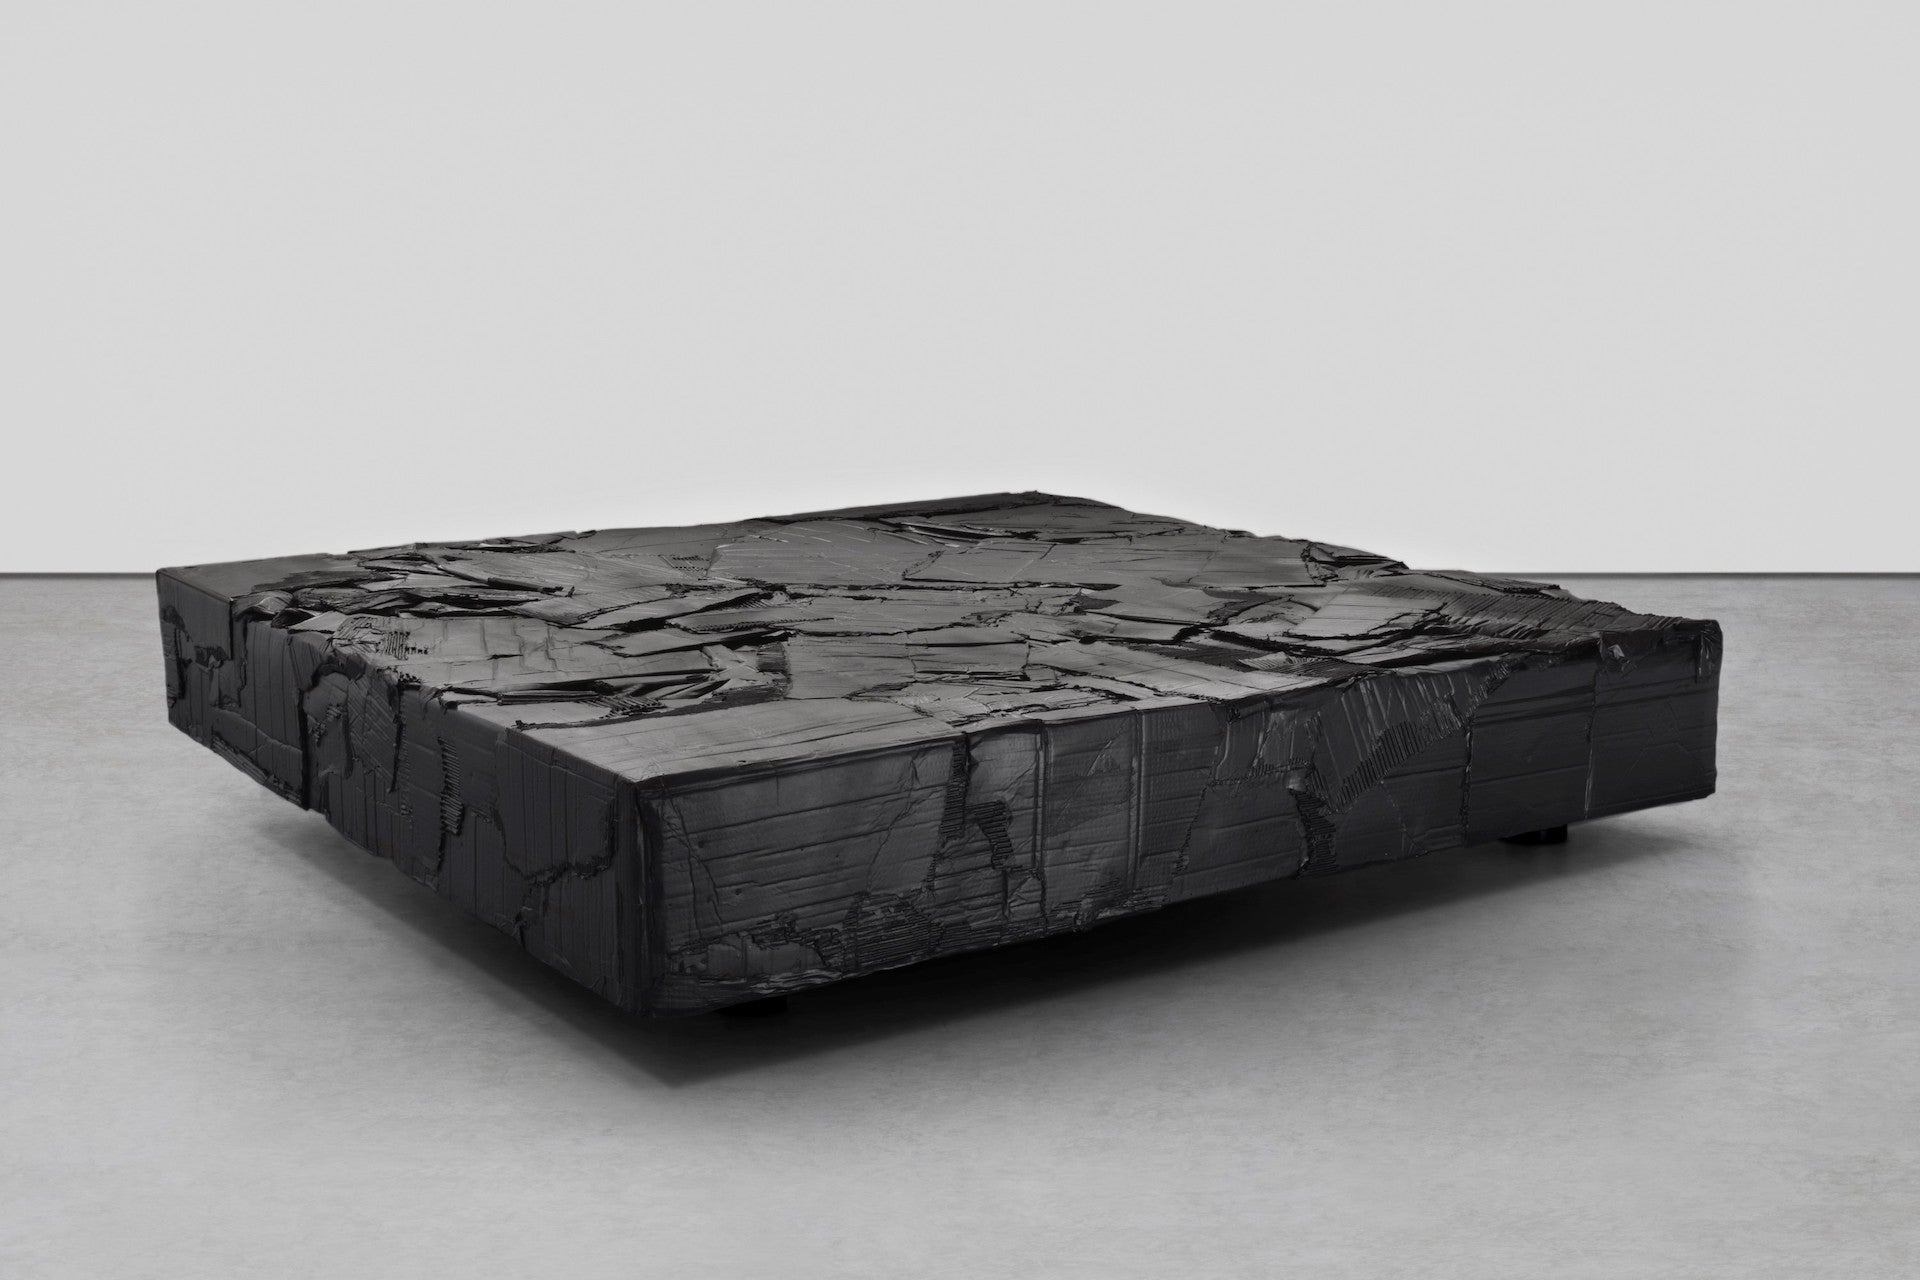 Coffee Table Conception of Empire by Fredrikson Stallard for David Gill Gallery, 2019; Edition of 12 + 1P. Photo © David Gill Gallery